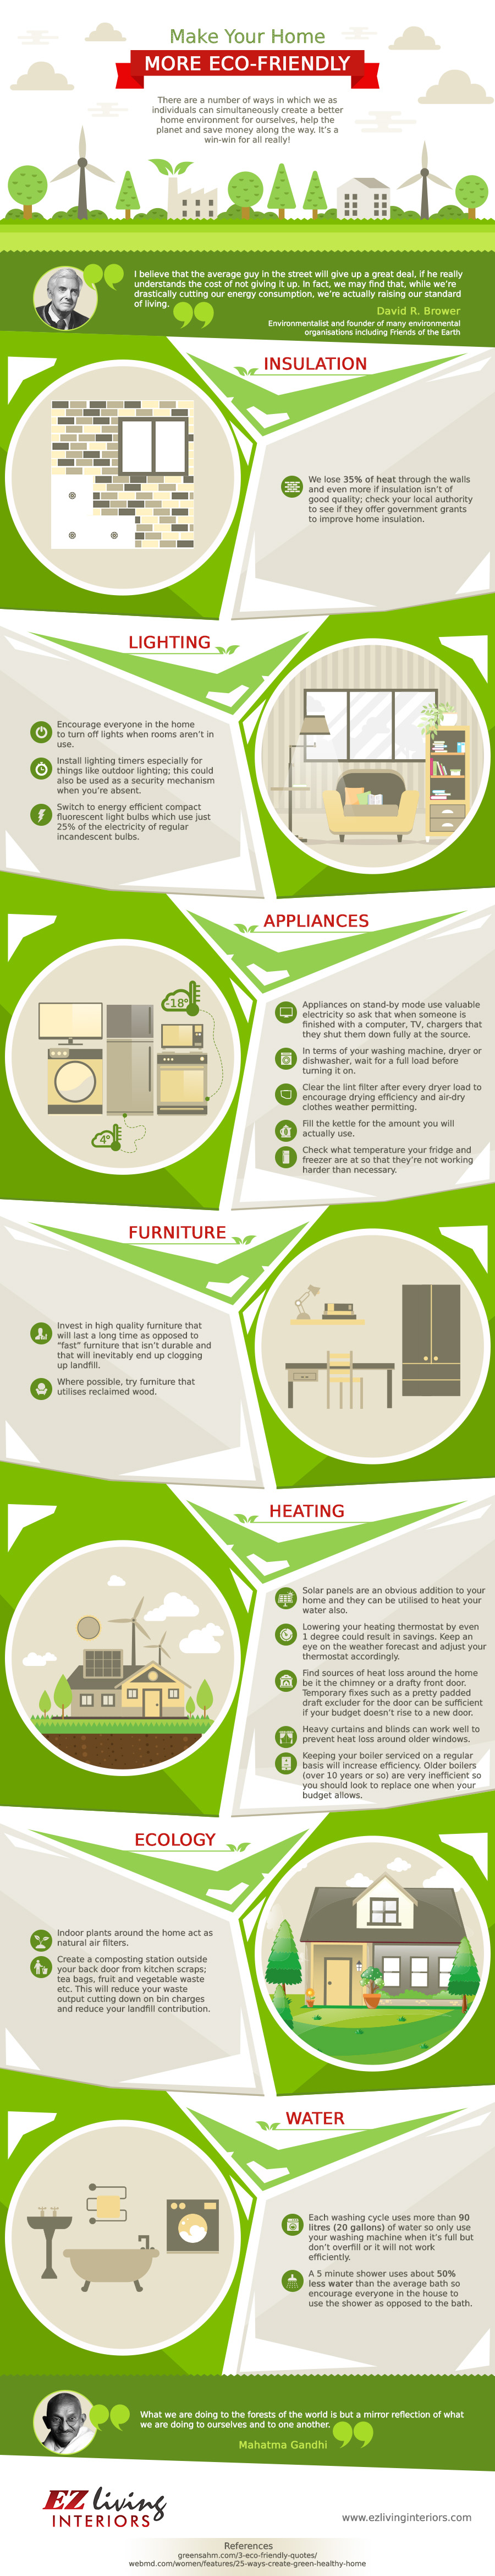 Helen OKeefe_Being Eco-Friendly in the Home – Infographic (1).jpg